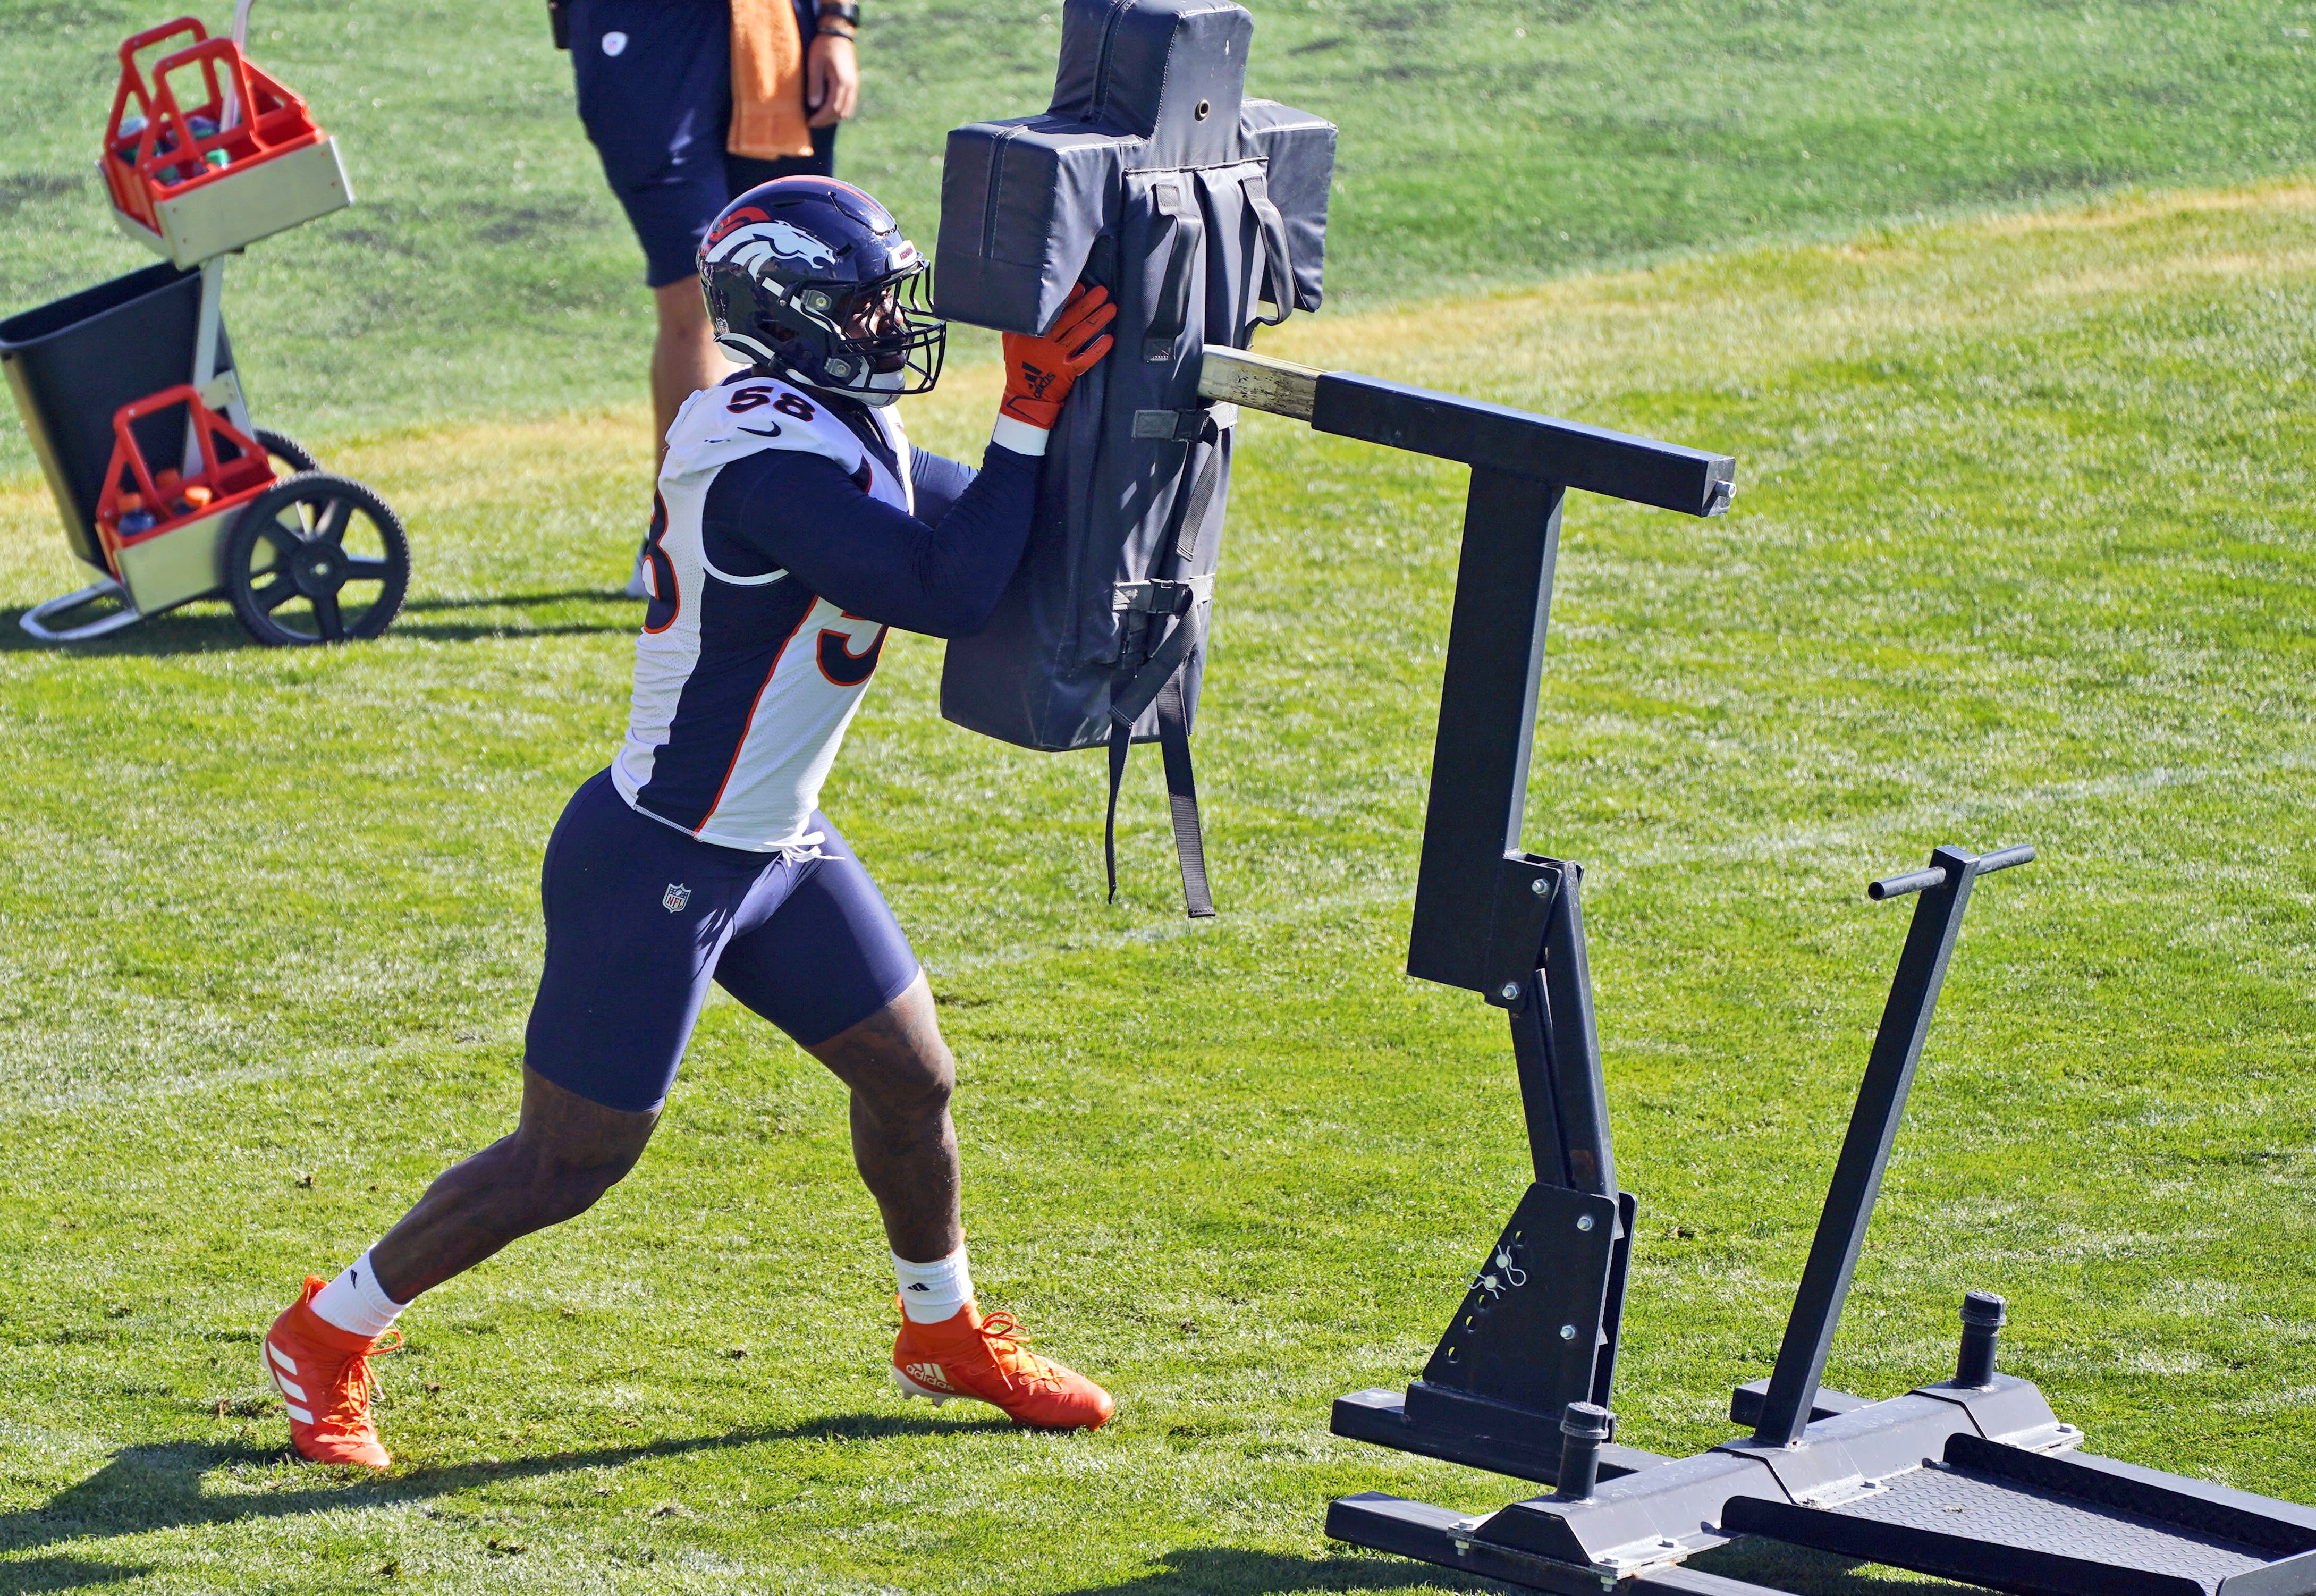 Denver Broncos linebacker Von Miller takes part in drills during an NFL football practice Thursday, Sept. 3, 2020, in Englewood, Colo. (AP Photo/David Zalubowski)